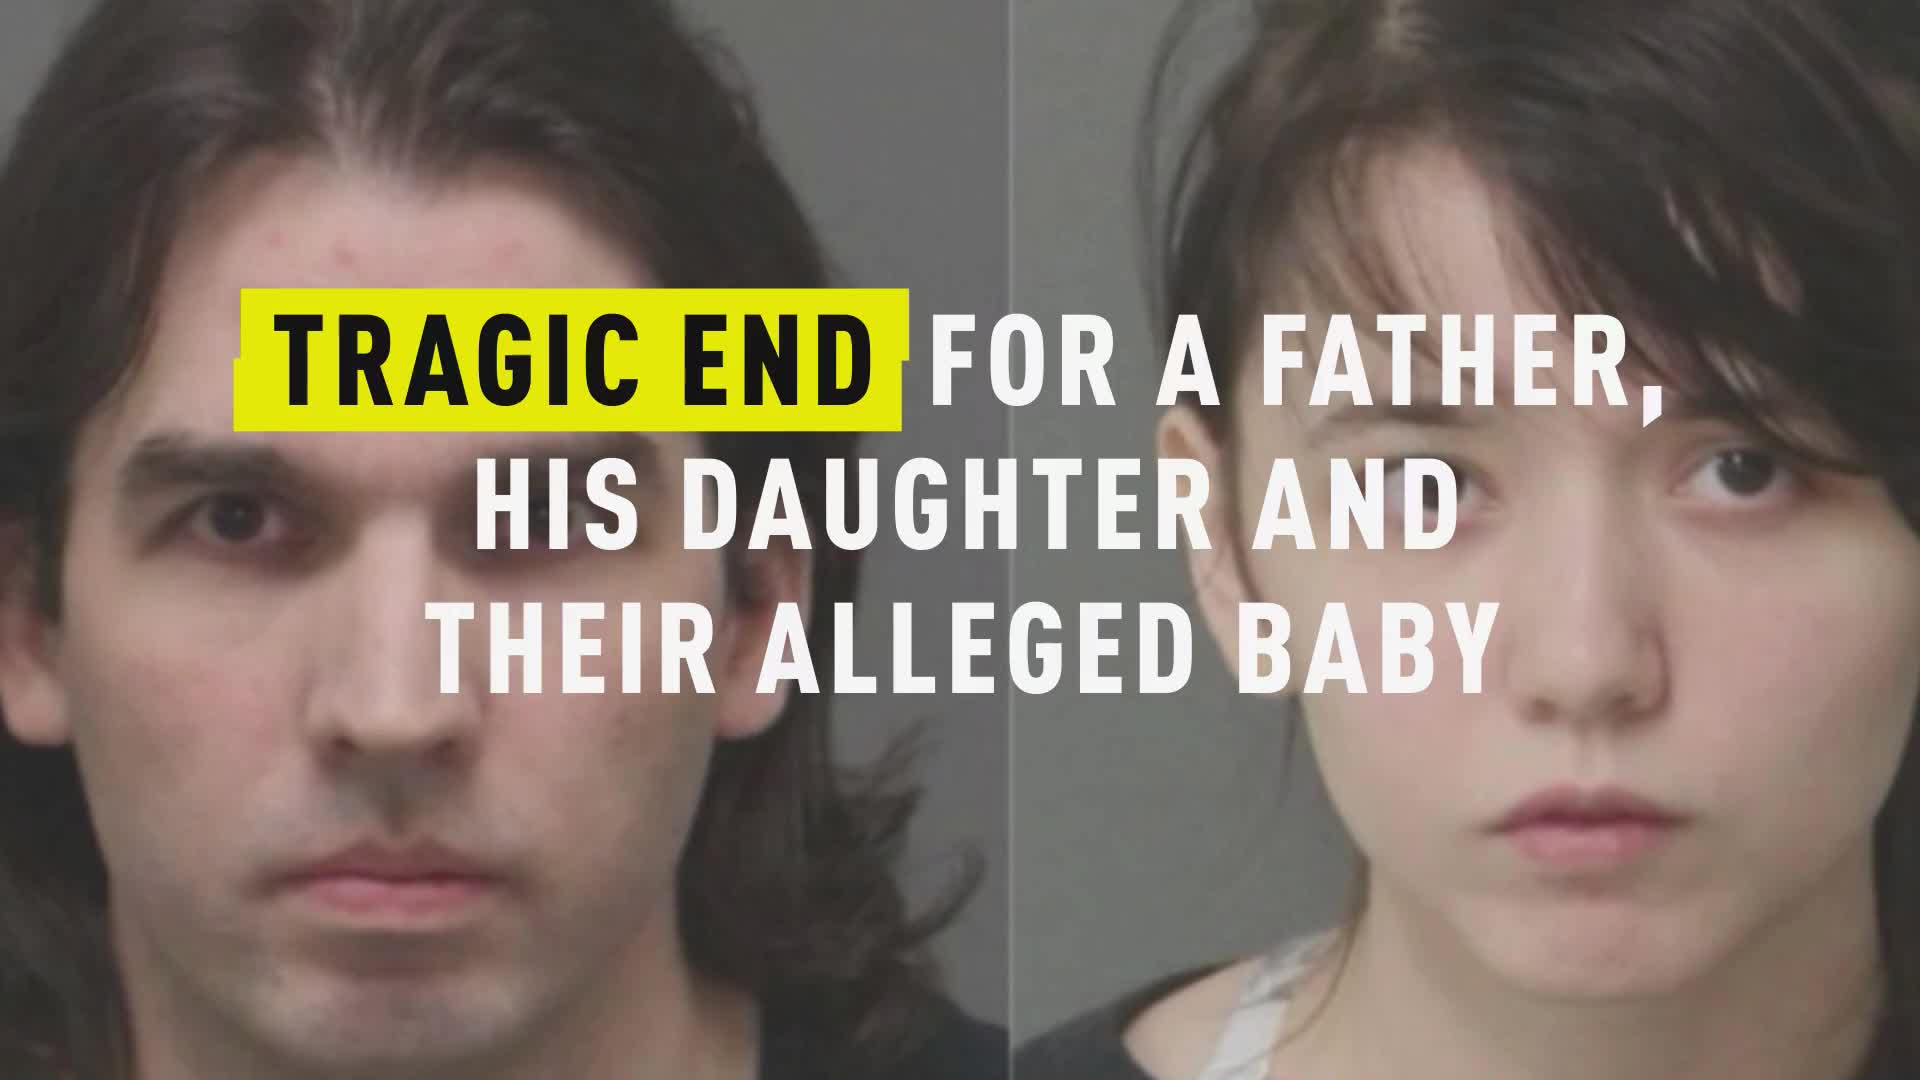 Tragic End for a Father, His Daughter and Their Alleged Baby